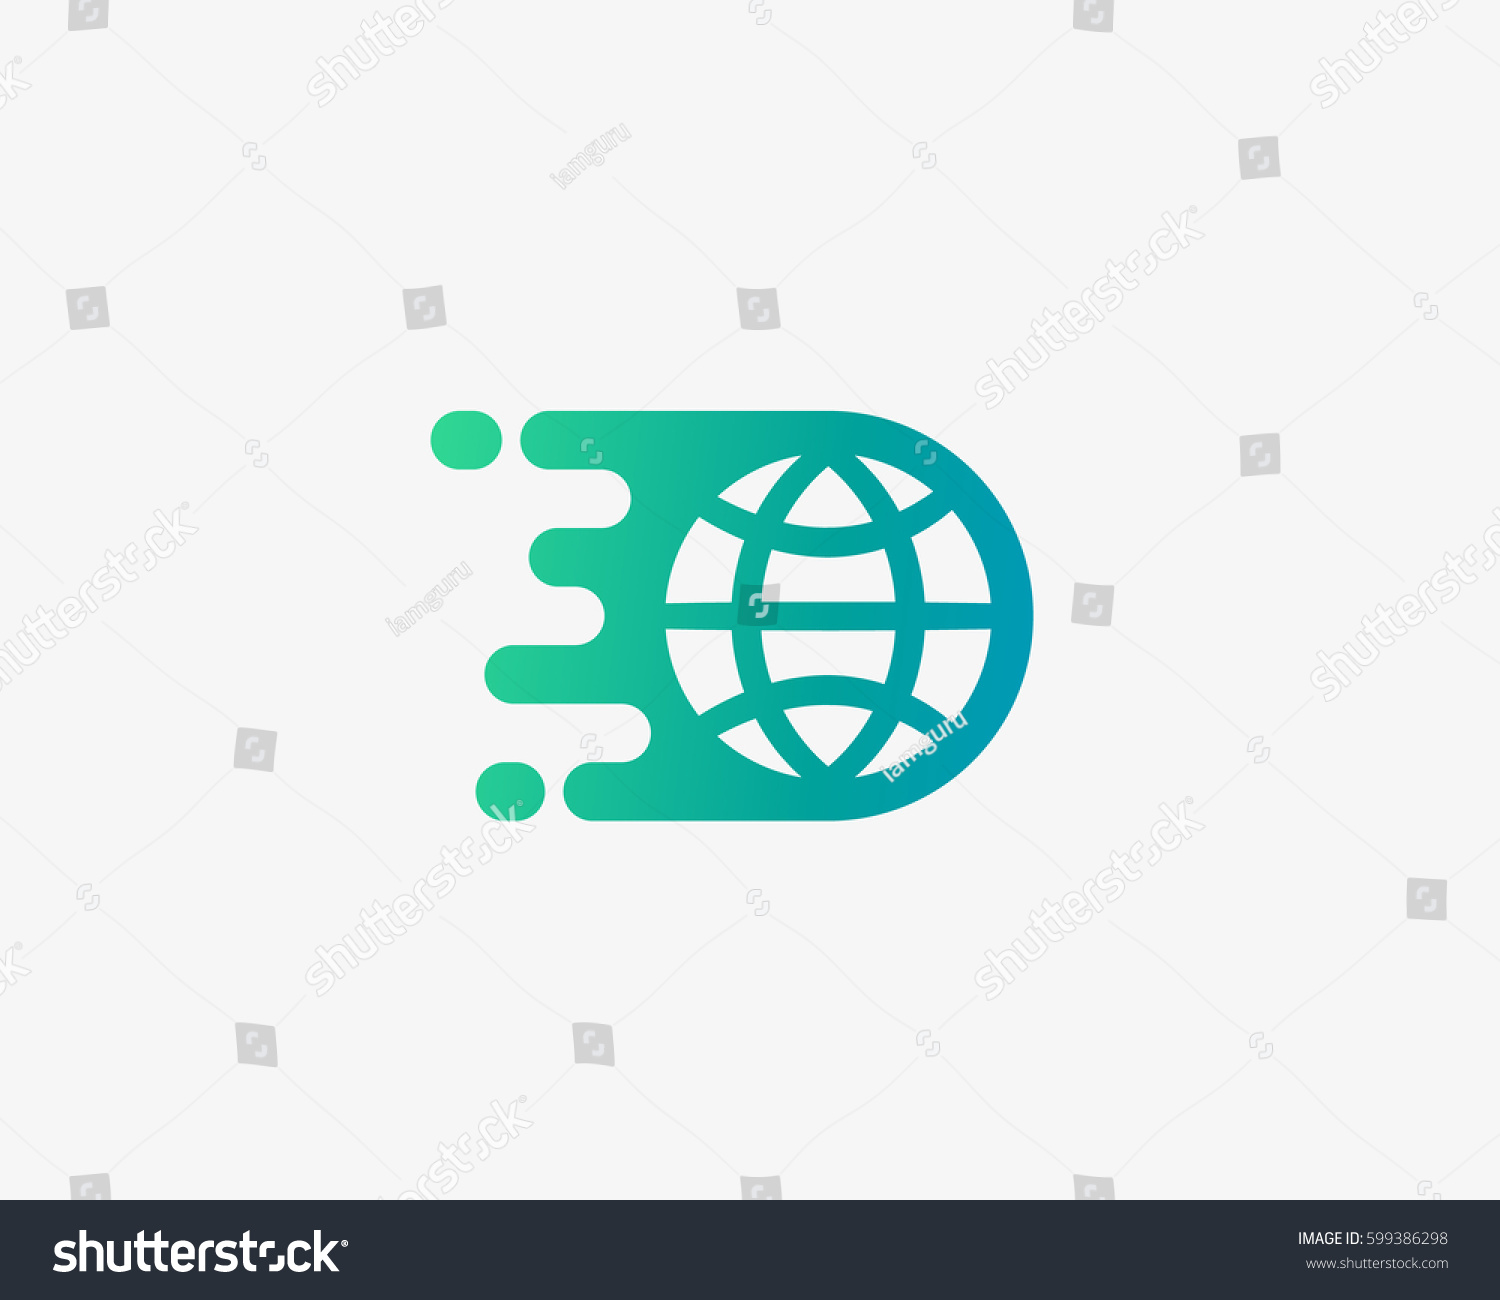 Planet Earth Vector Logo Design Globe Stock Vector (Royalty Free ...